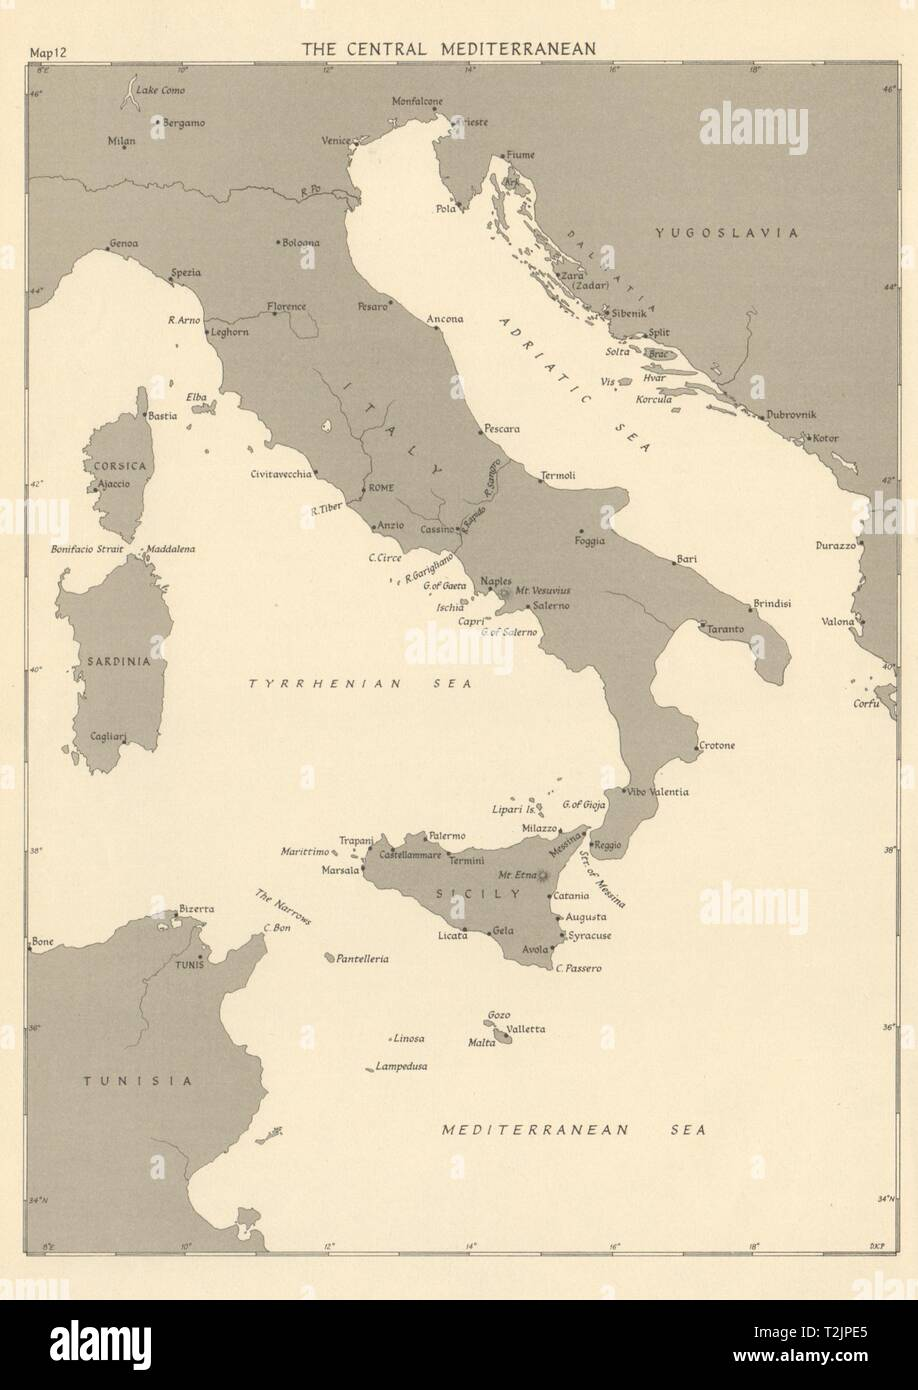 Picture of: Central Mediterranean Ports In 1943 Italy Adriatic World War 2 1954 Old Map Stock Photo Alamy